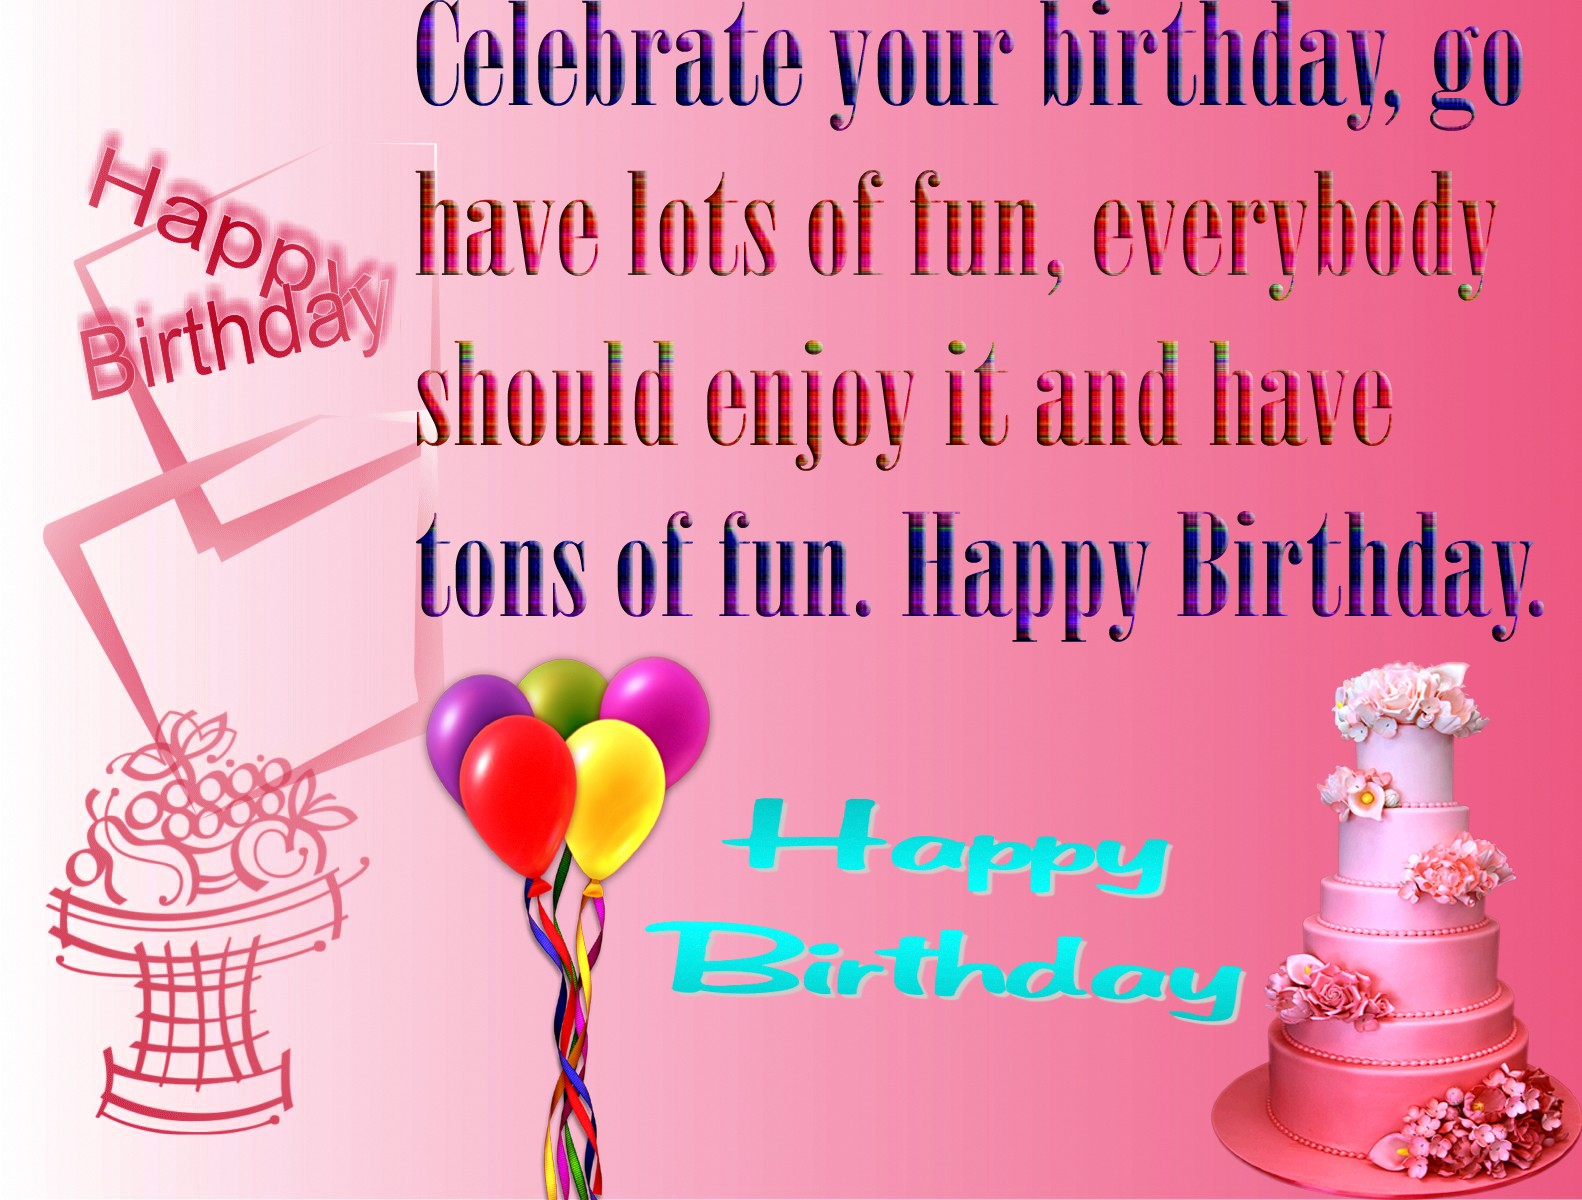 birthday message wallpaper ; Happy-Birthday-Images-For-Him-Wallpapers-032